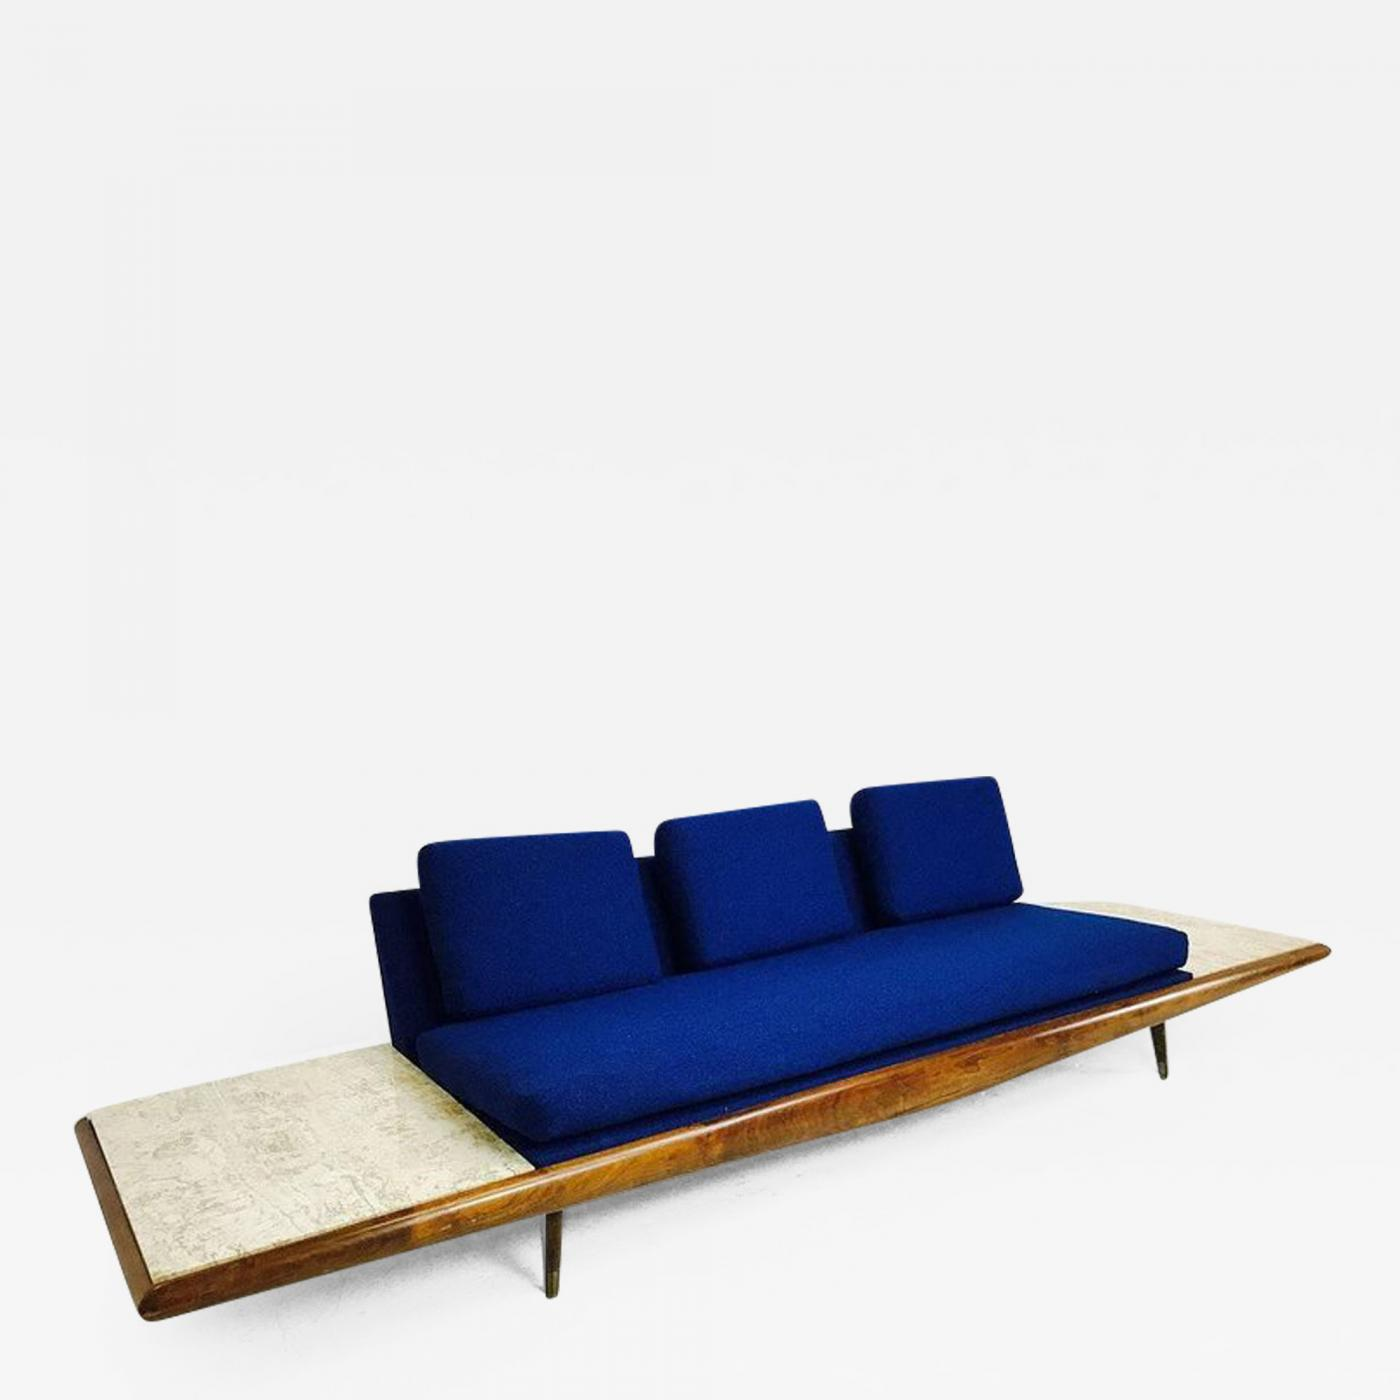 Amazing Adrian Pearsall Adrian Pearsall Sofa With Built In Travertine Side Tables Bralicious Painted Fabric Chair Ideas Braliciousco